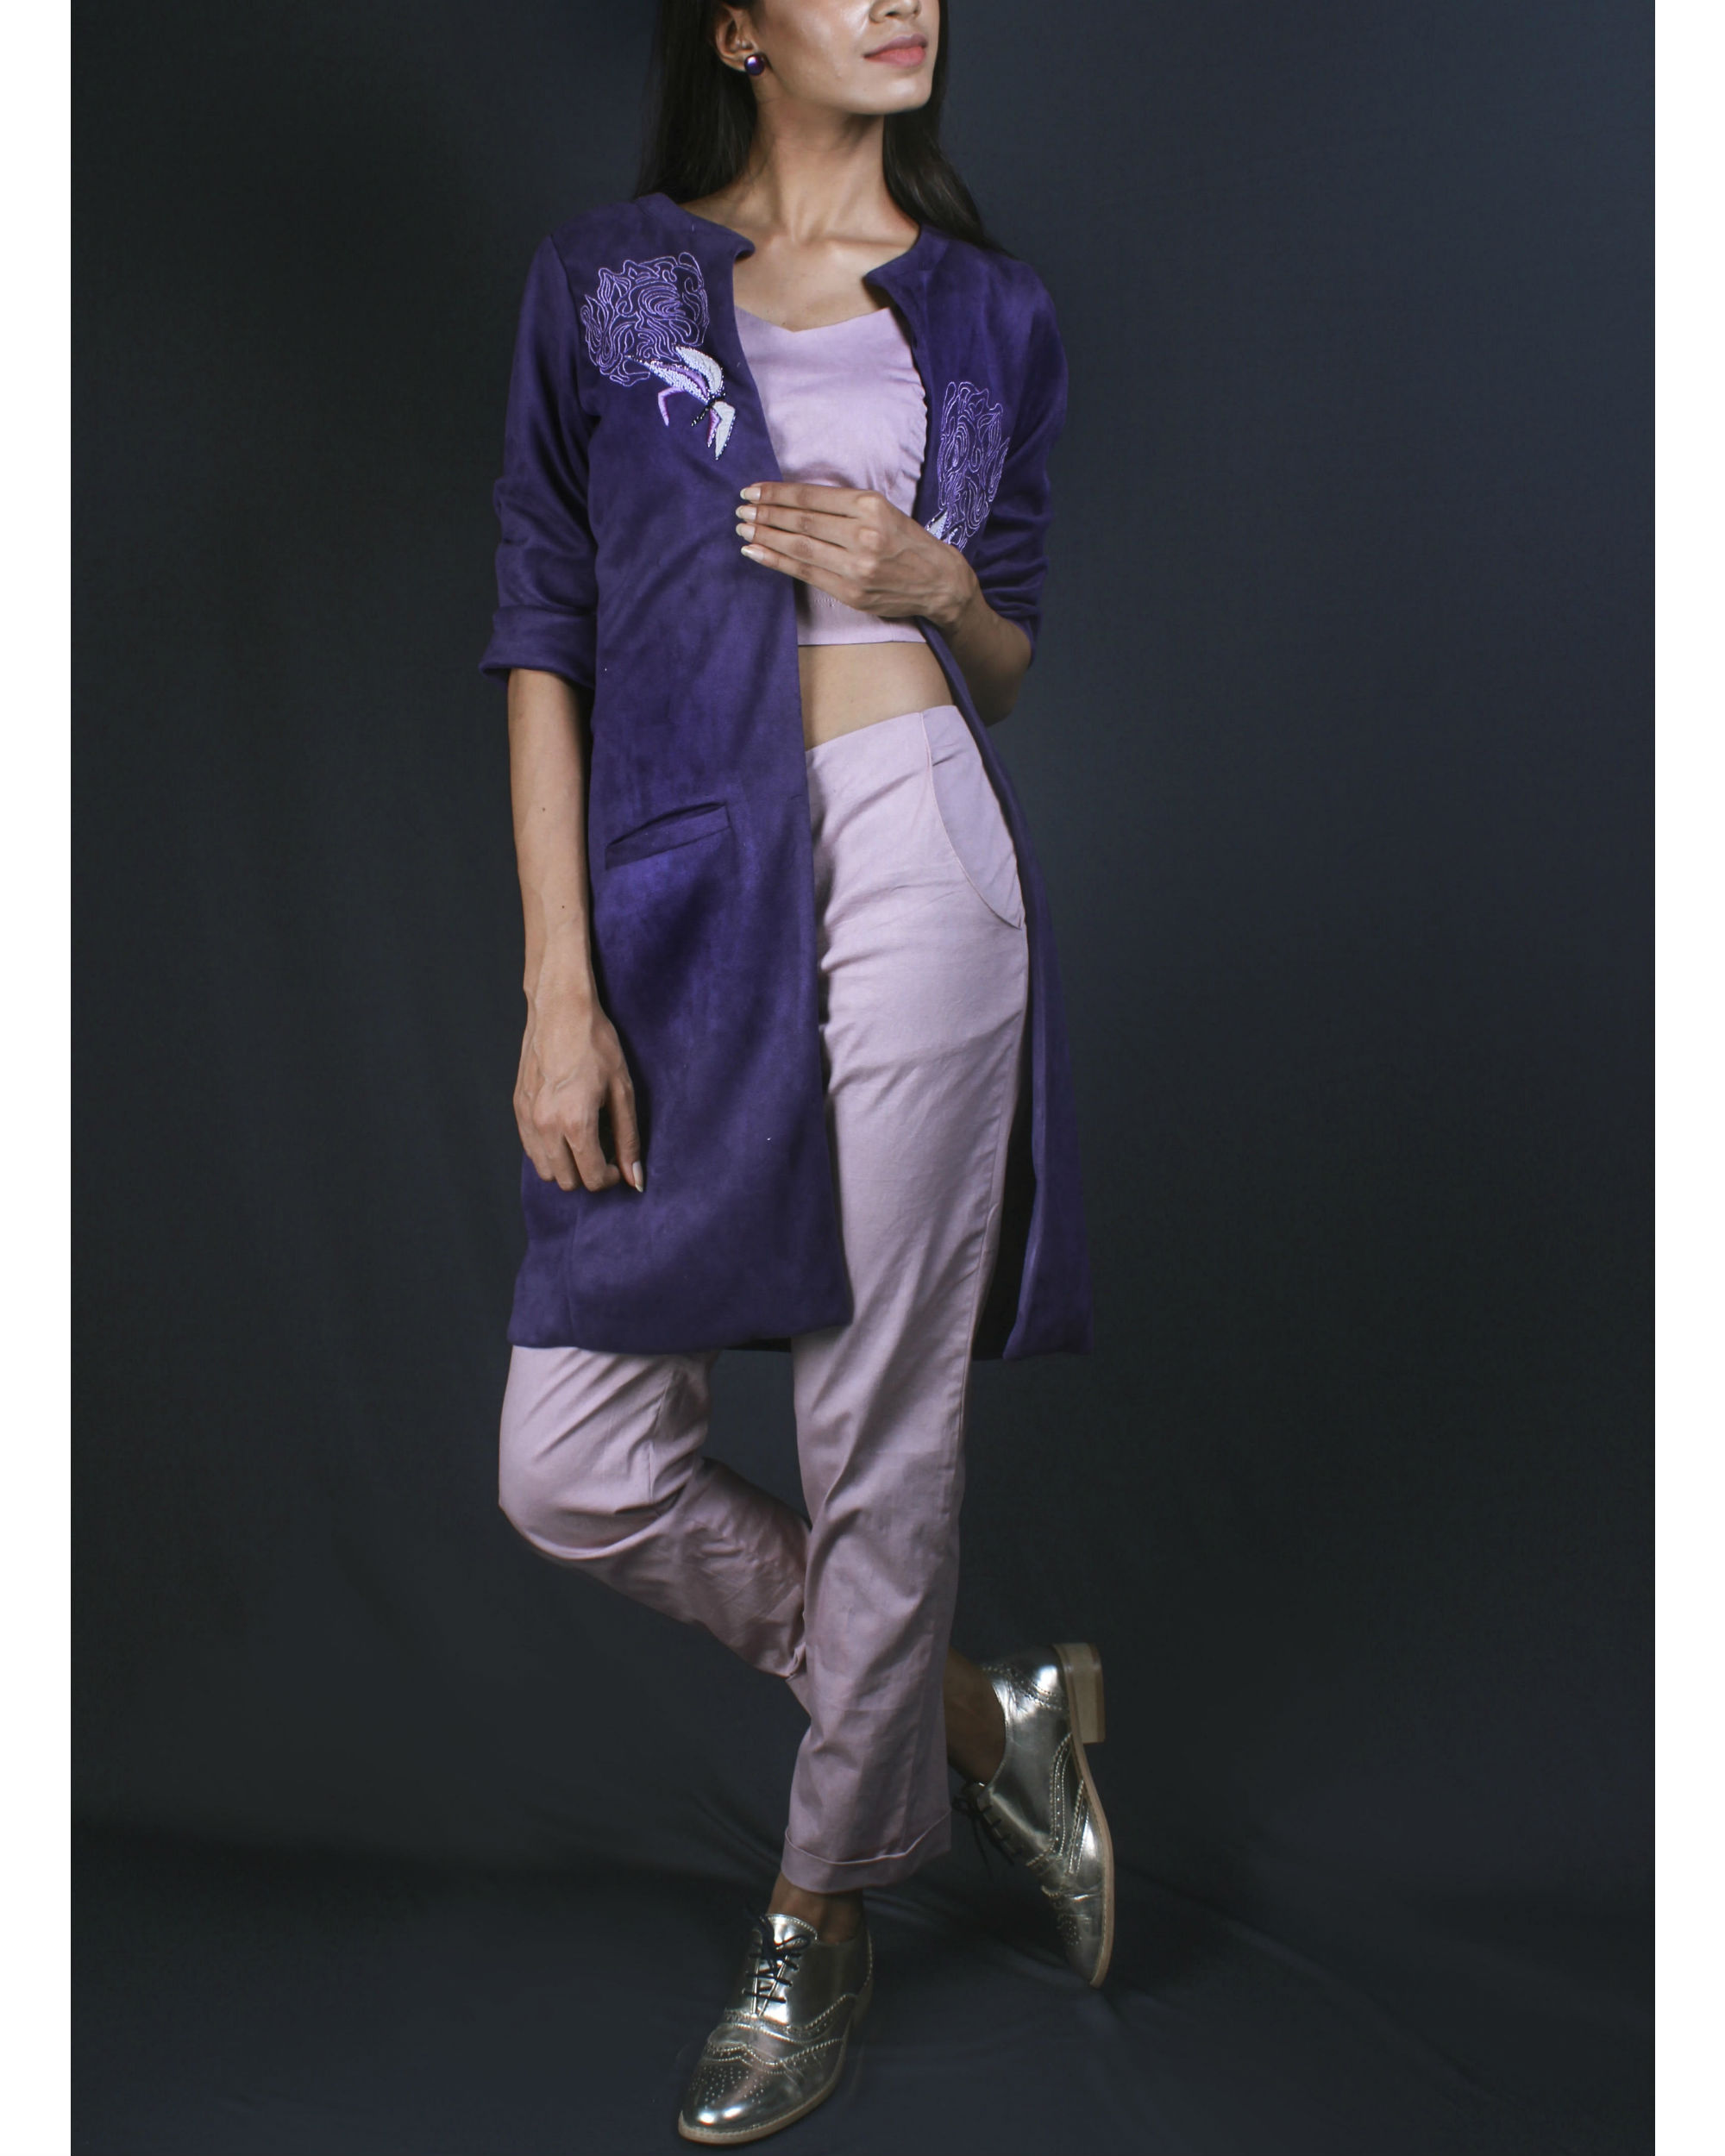 Lavender crop top and pants with suede jacket